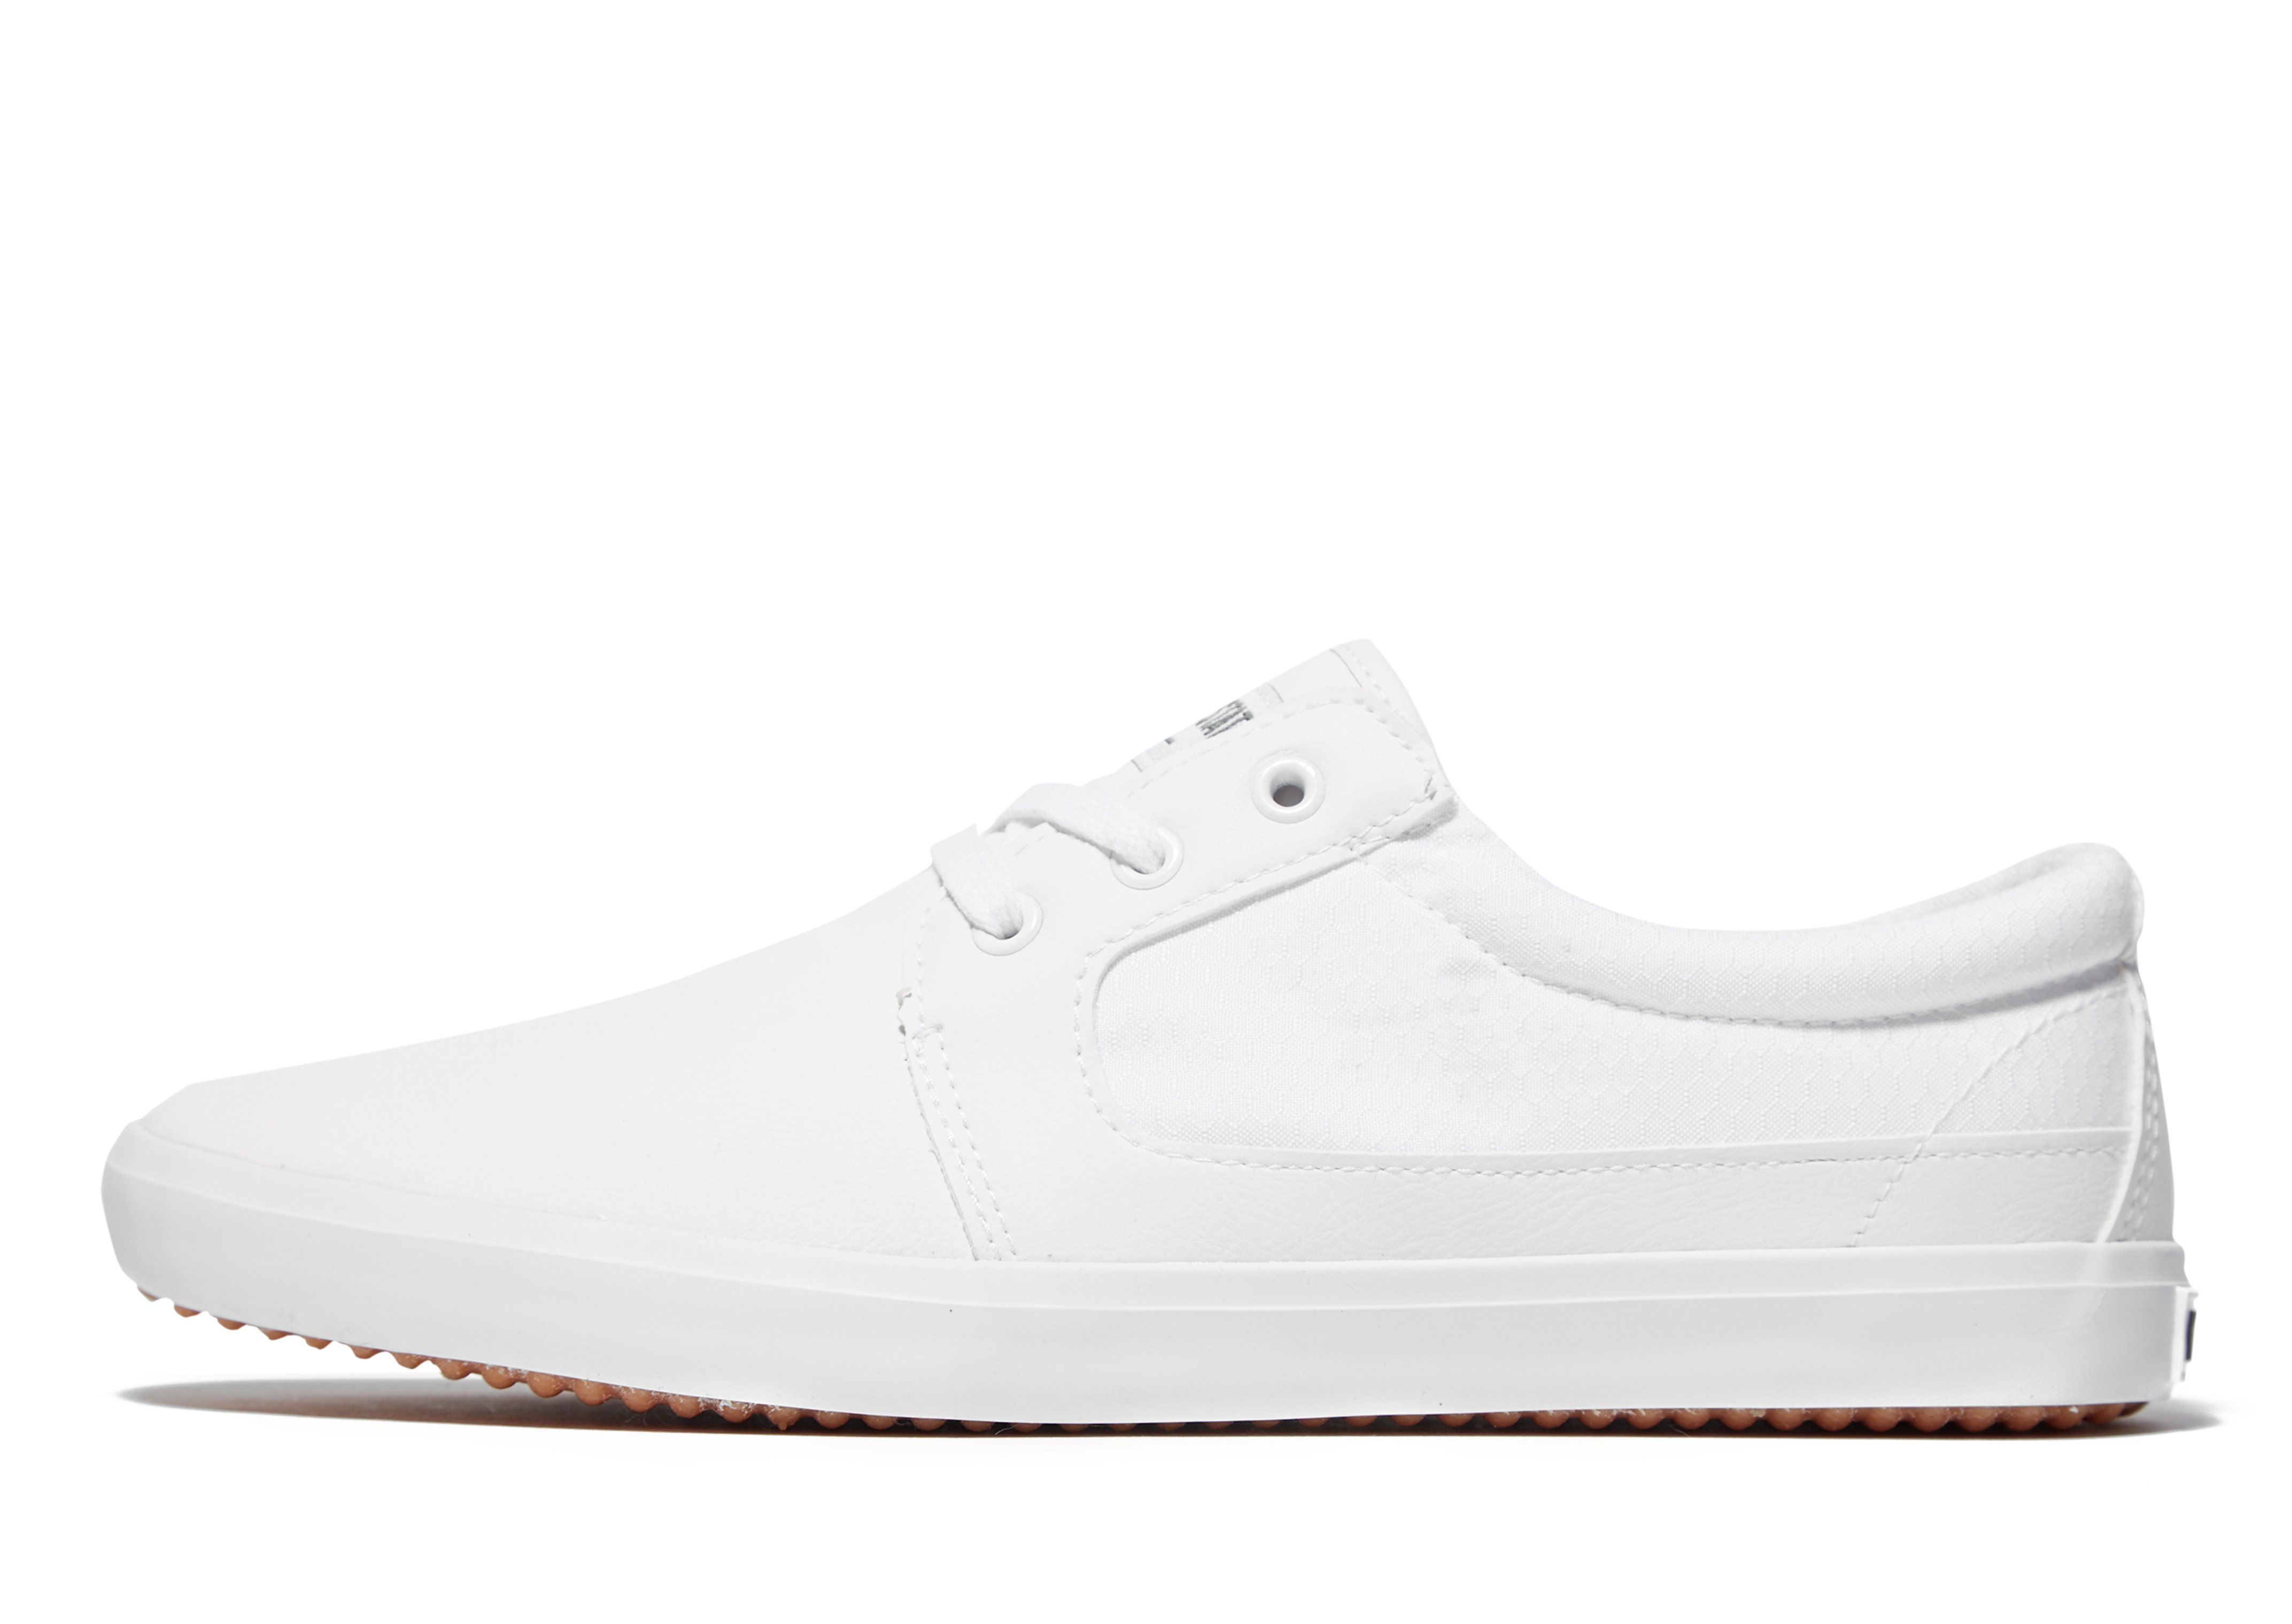 Nanny State Indiana 2 - Men's Trainers - White 290154